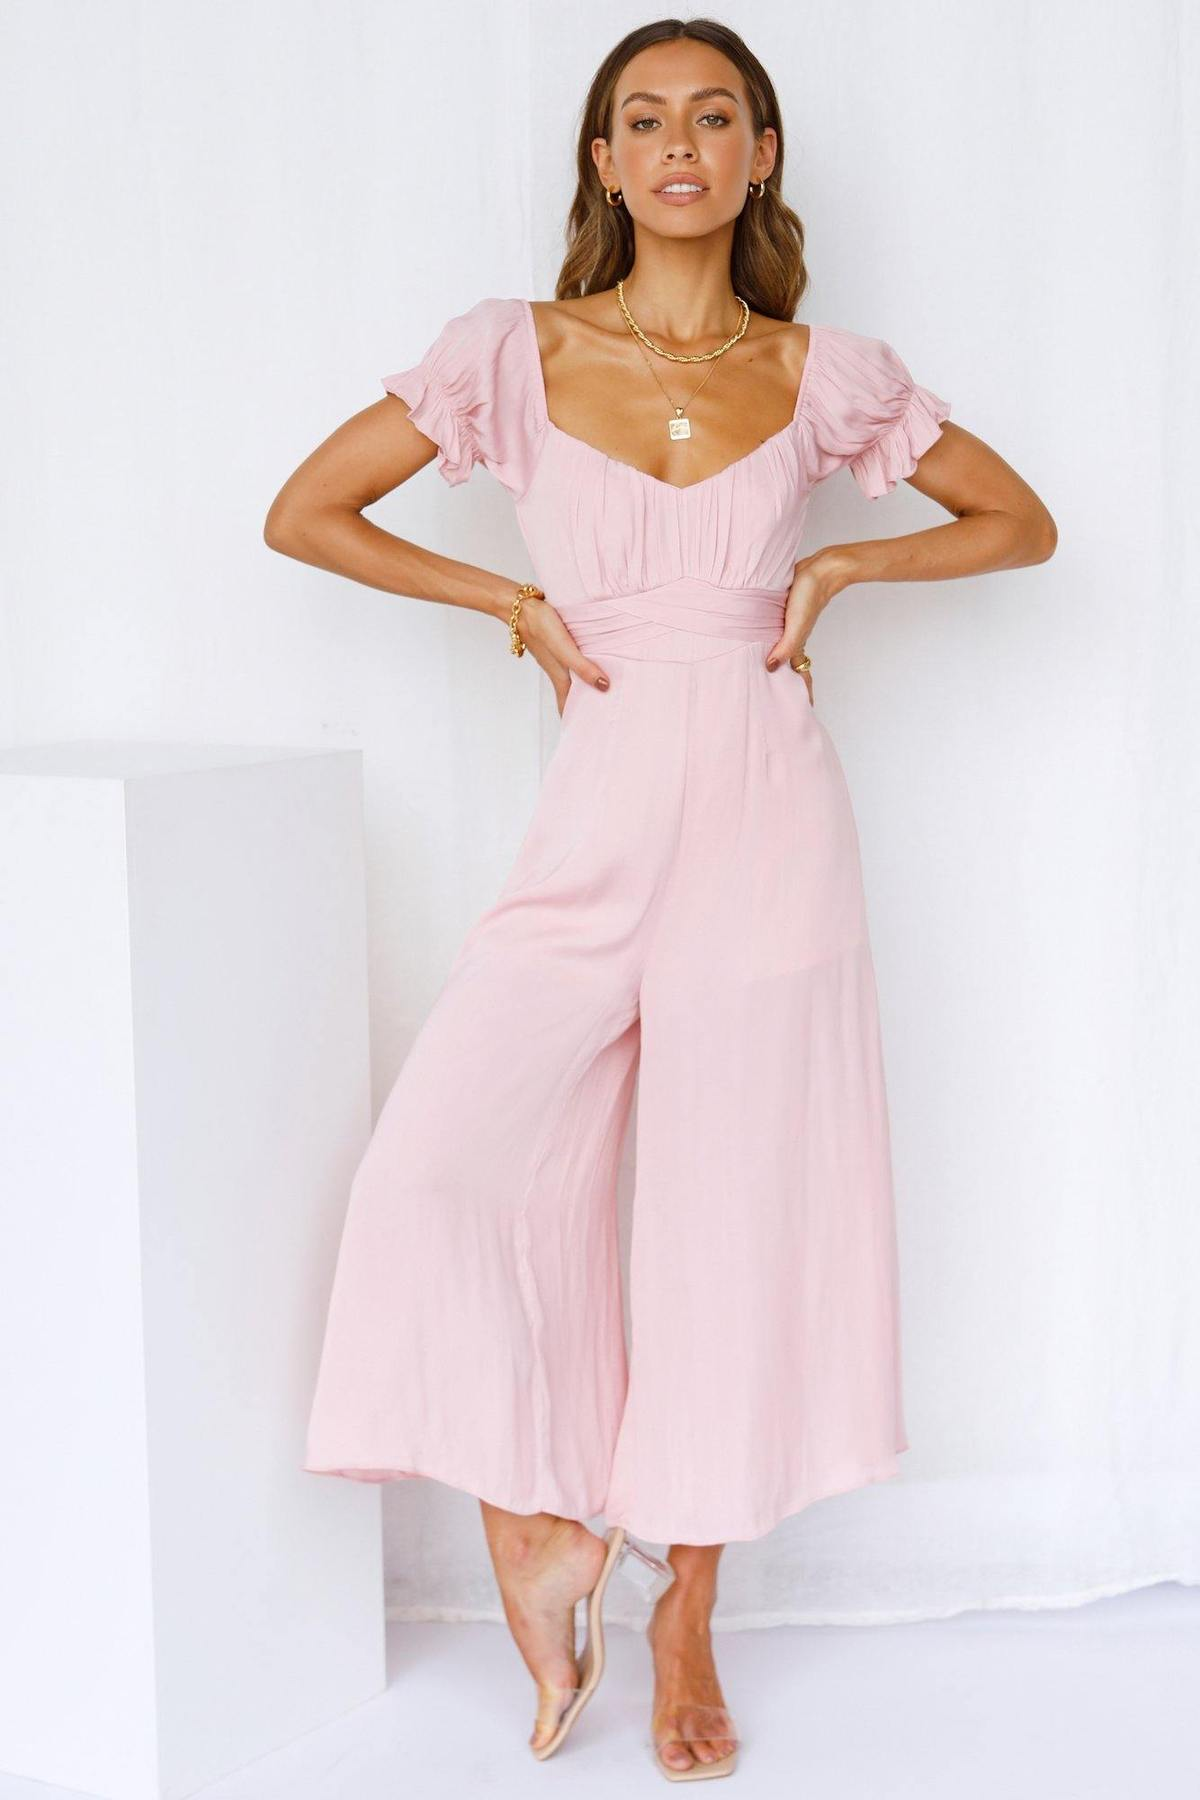 What To Wear To A Celebration Of Life: Blush jumpsuit